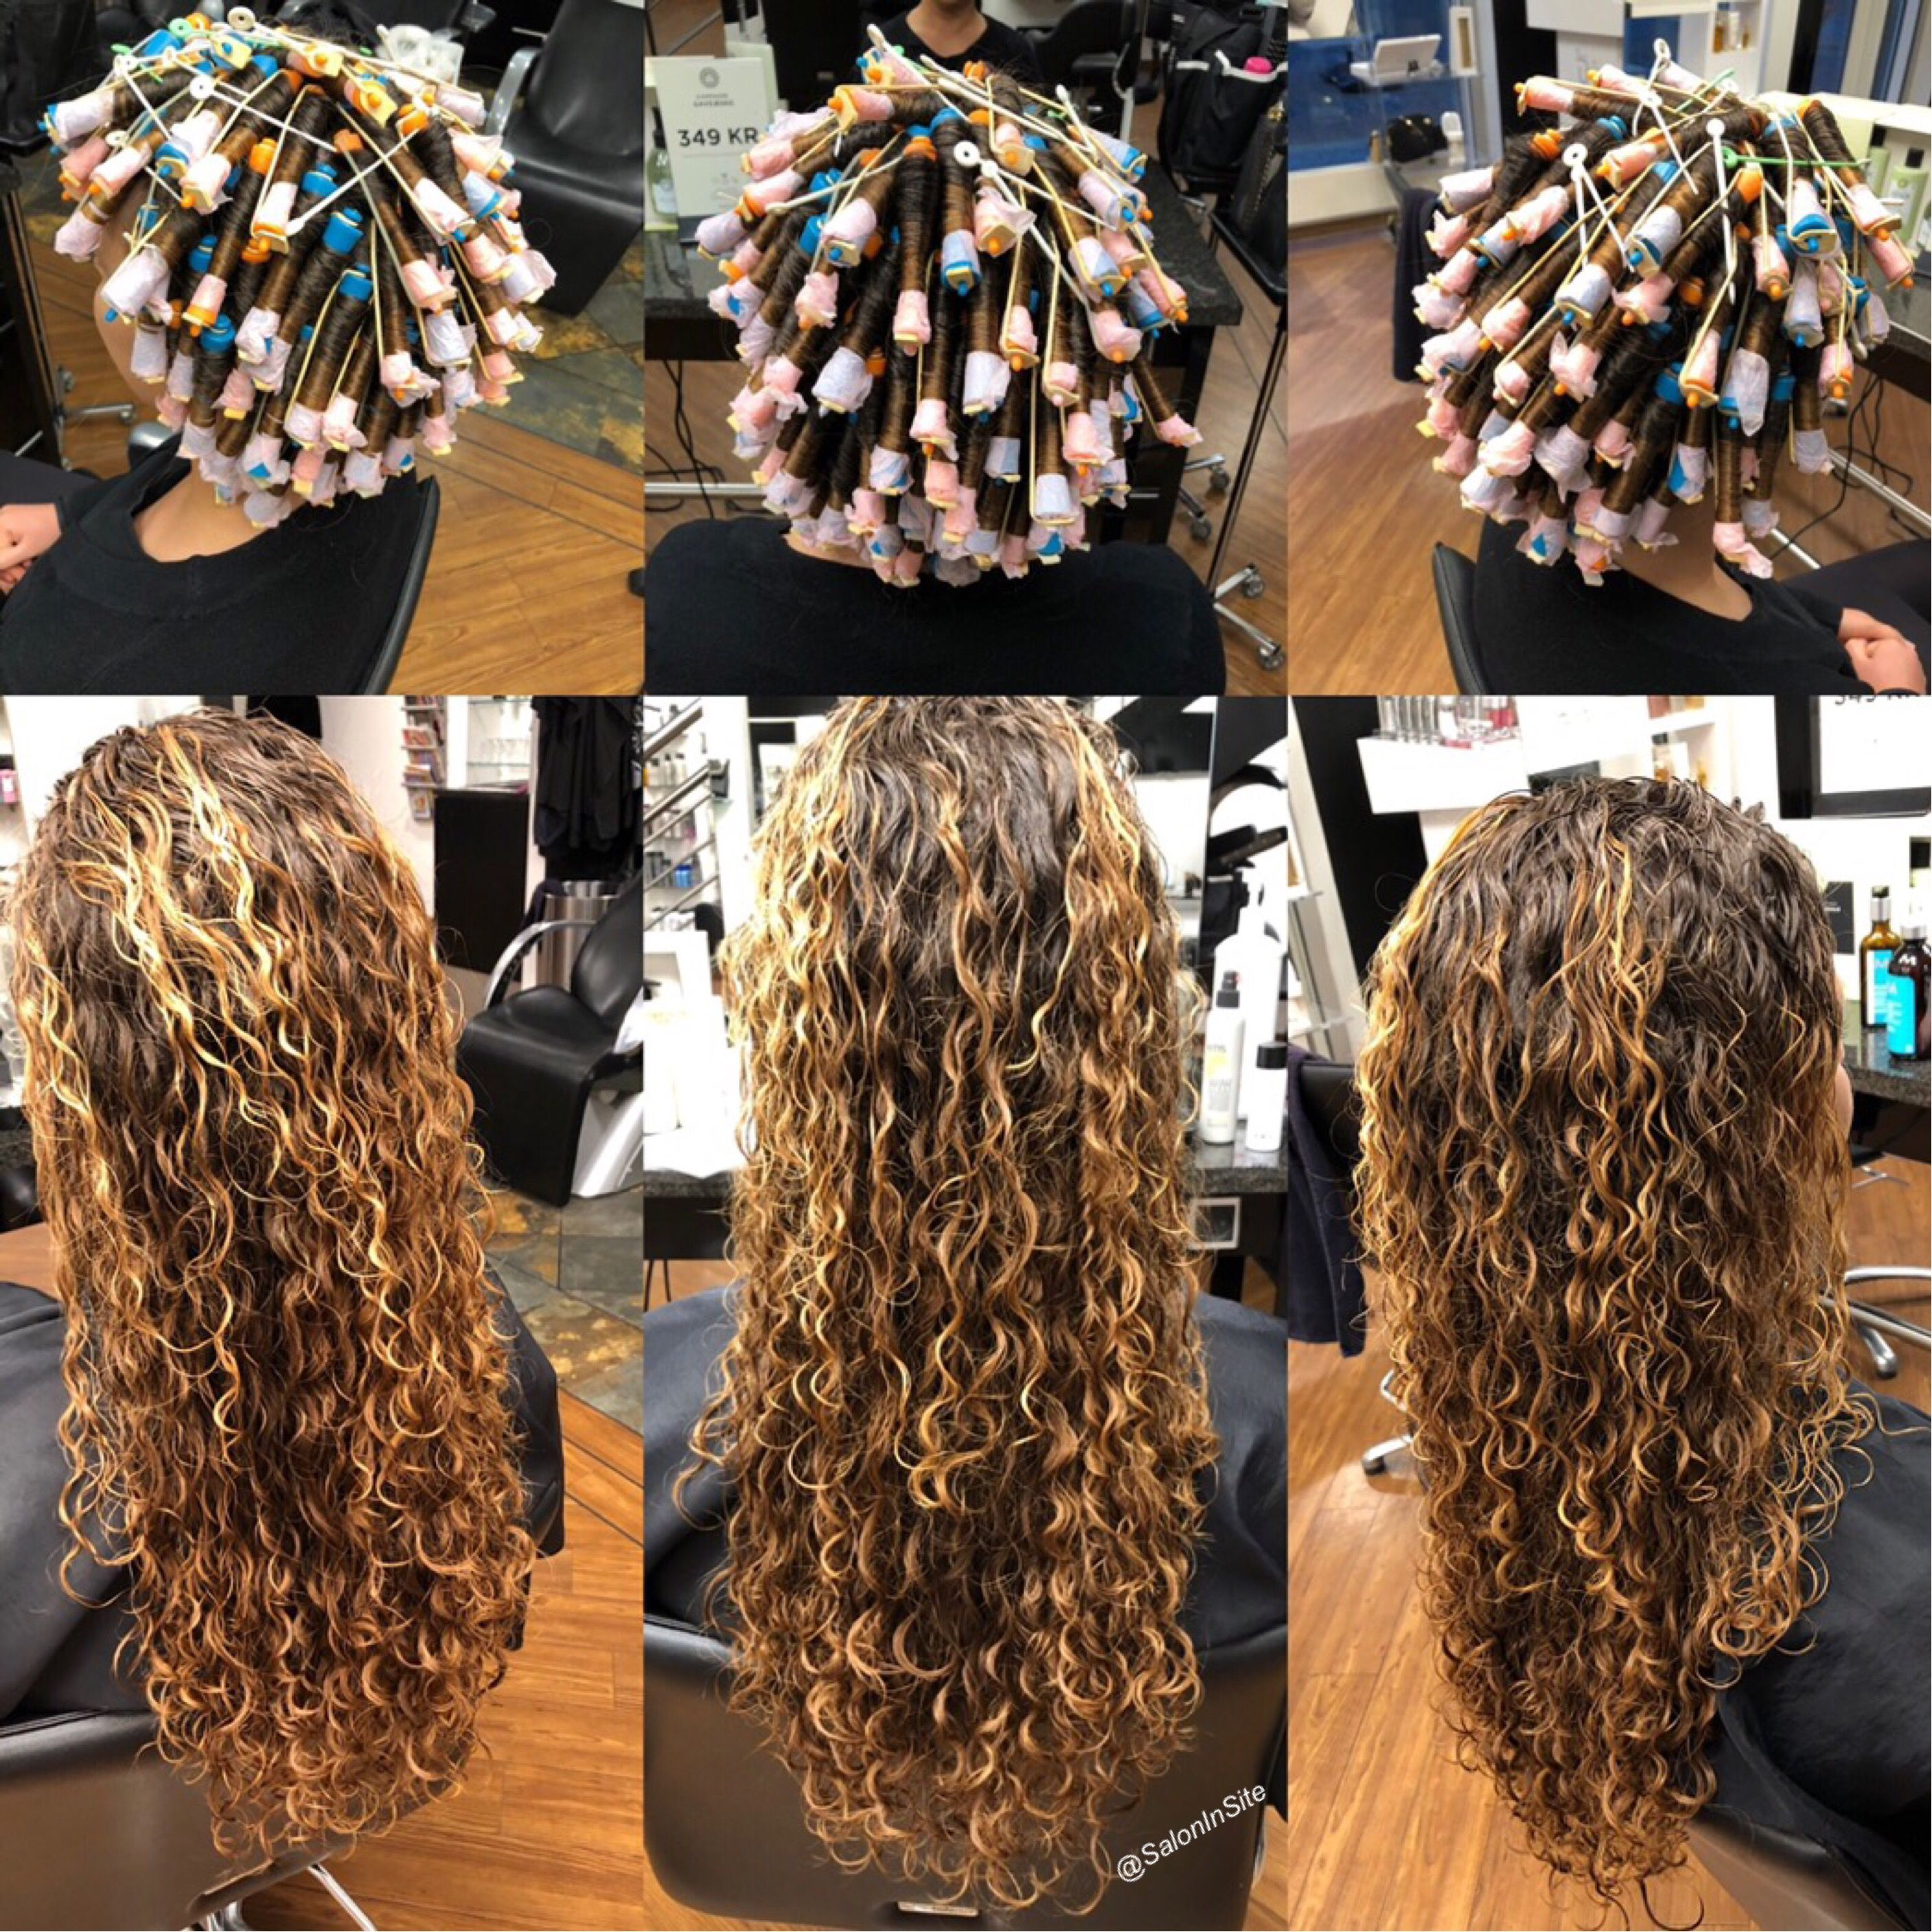 Real Perm Before After Using Full Body Per Solution Curls Perm Beforeafter Full Volume Evcc Hair Permed Hairstyles Short Permed Hair Curly Perm